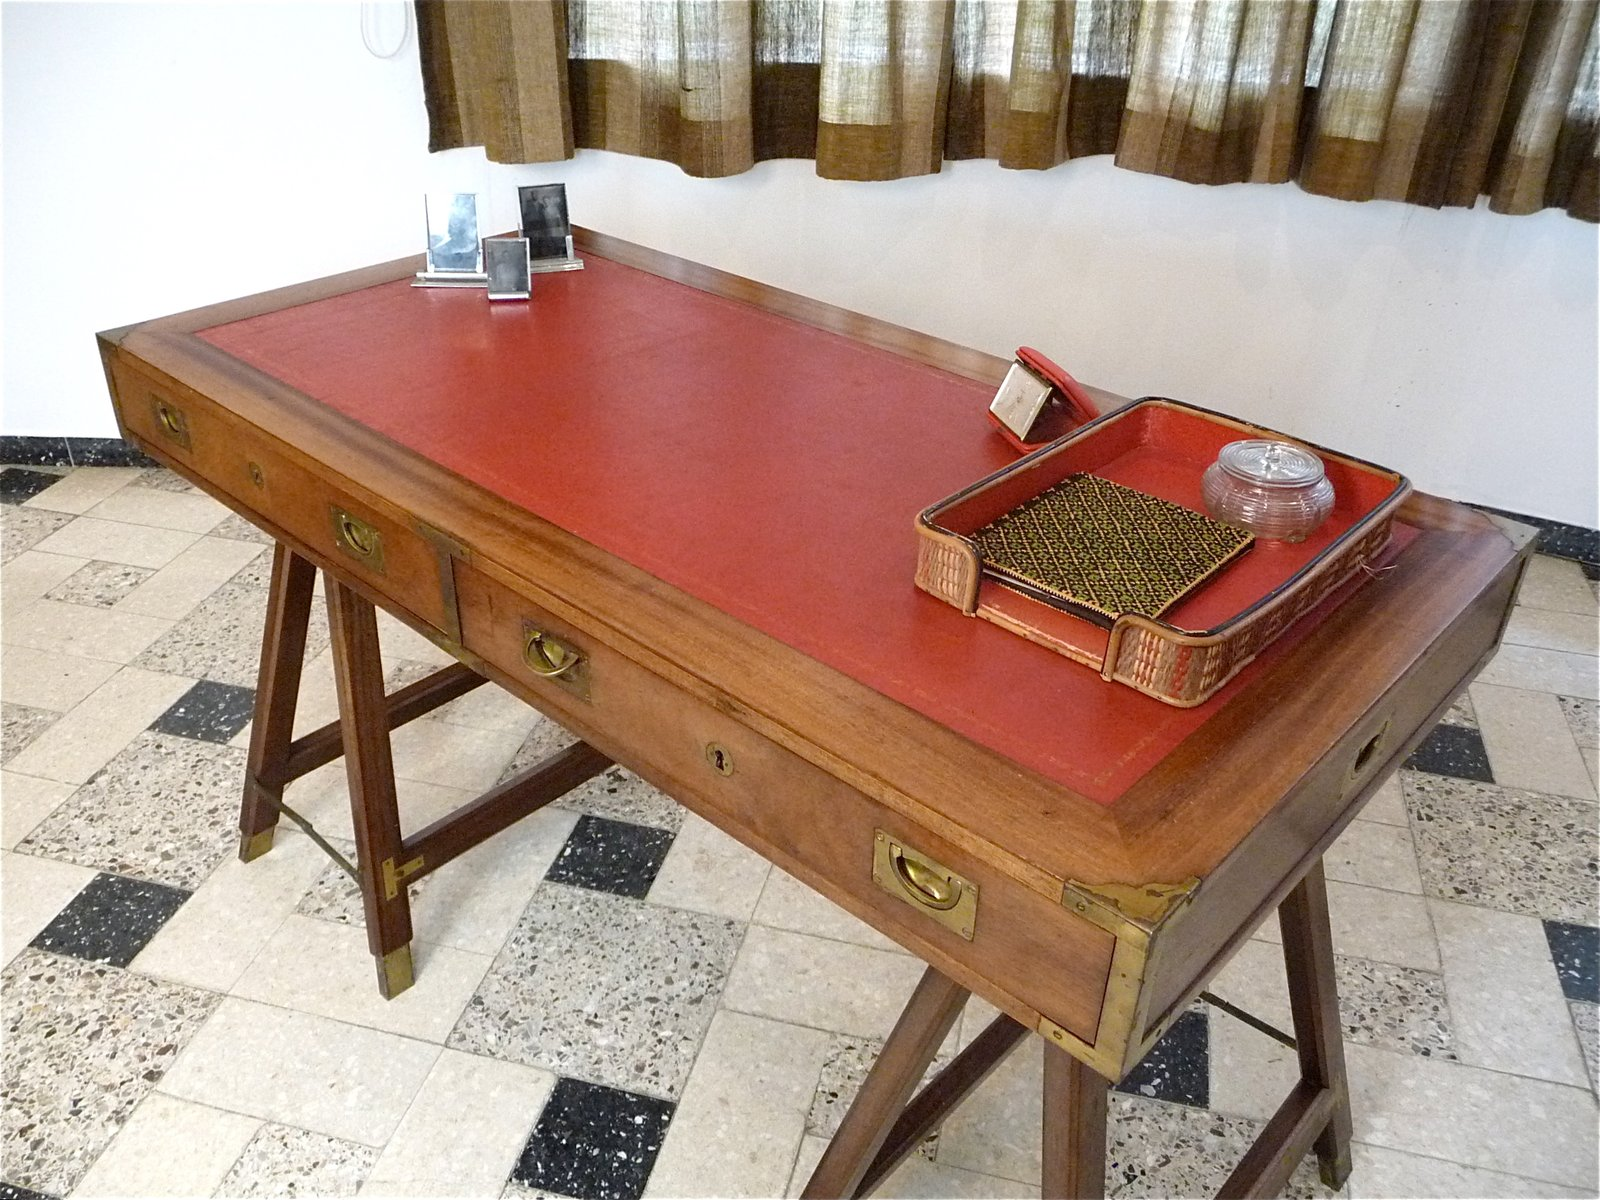 Vintage British Campaign Desk in Mahogany and Leather for sale at